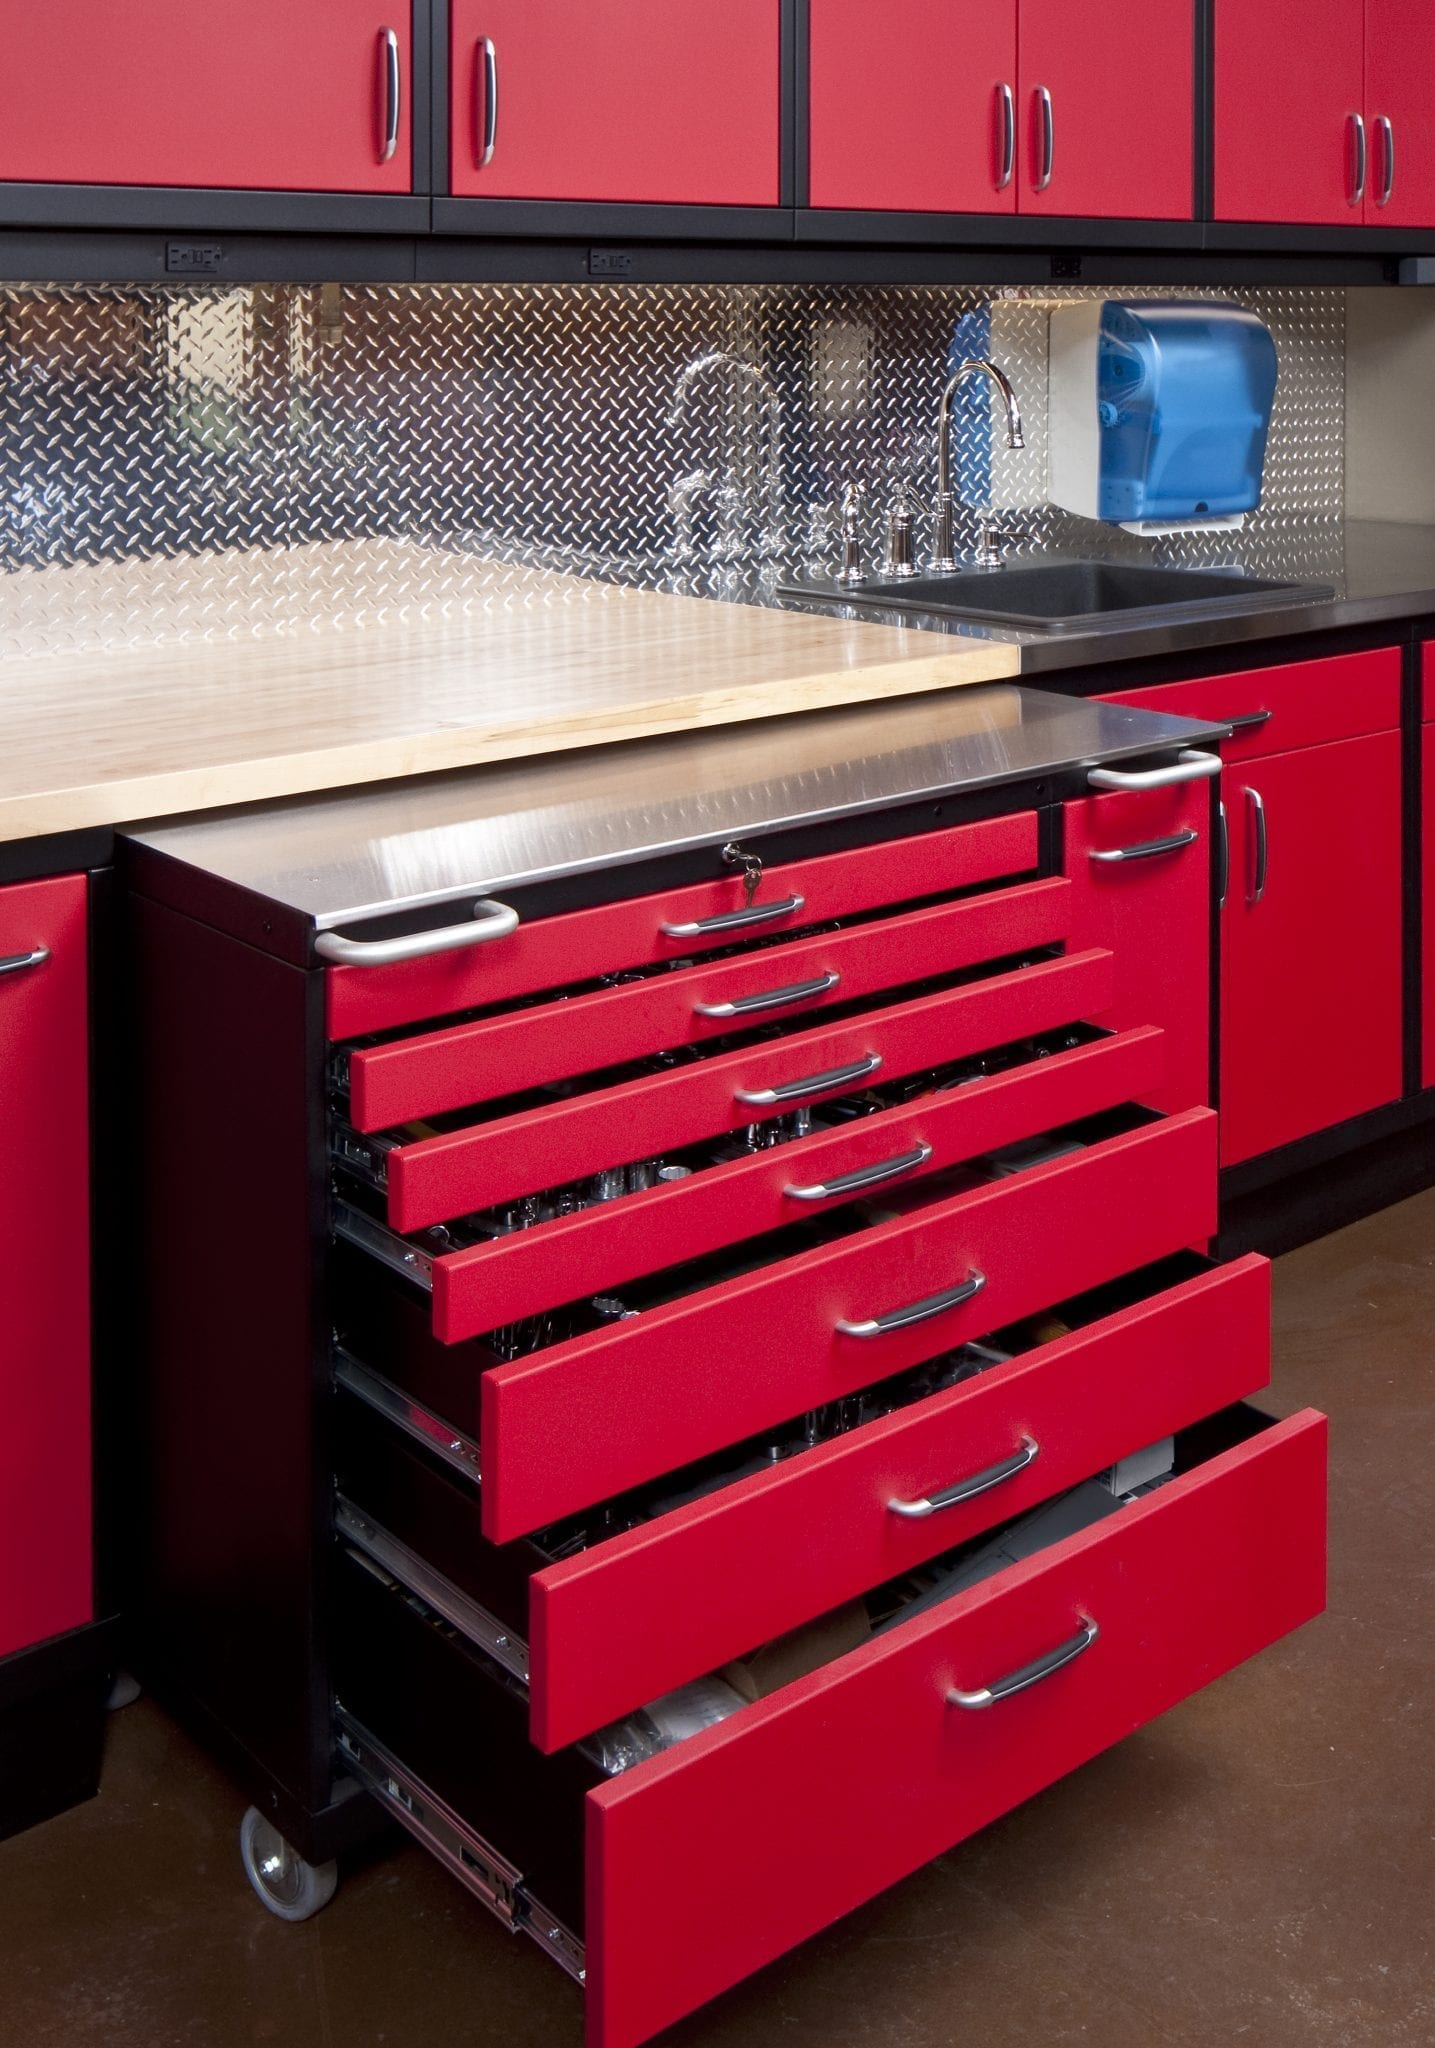 Workshop Countertop Garage Workshop Engrained Cabinetry And Countertops